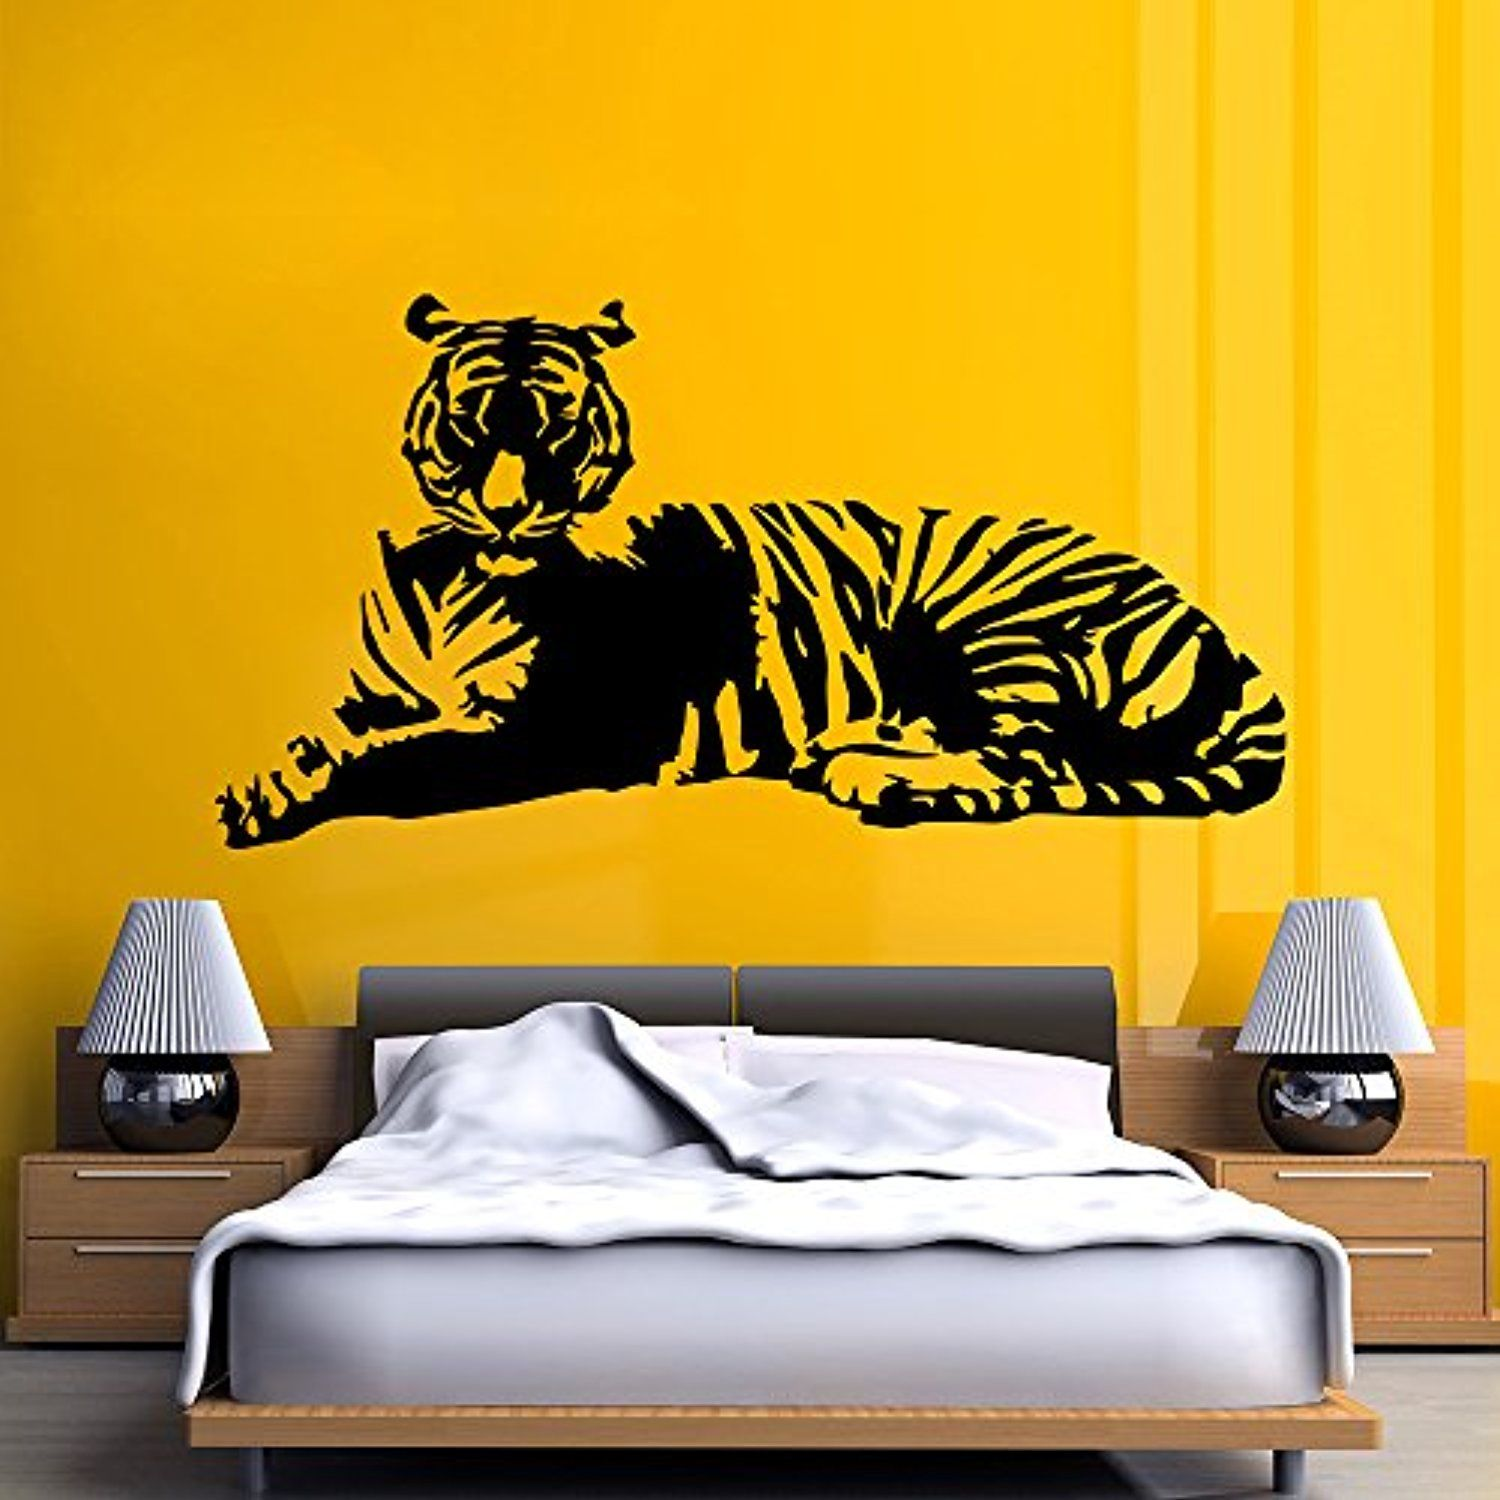 Tiger Vinyl Art Wall Decals Nursery Design Stickers Wild Animal Kids ...